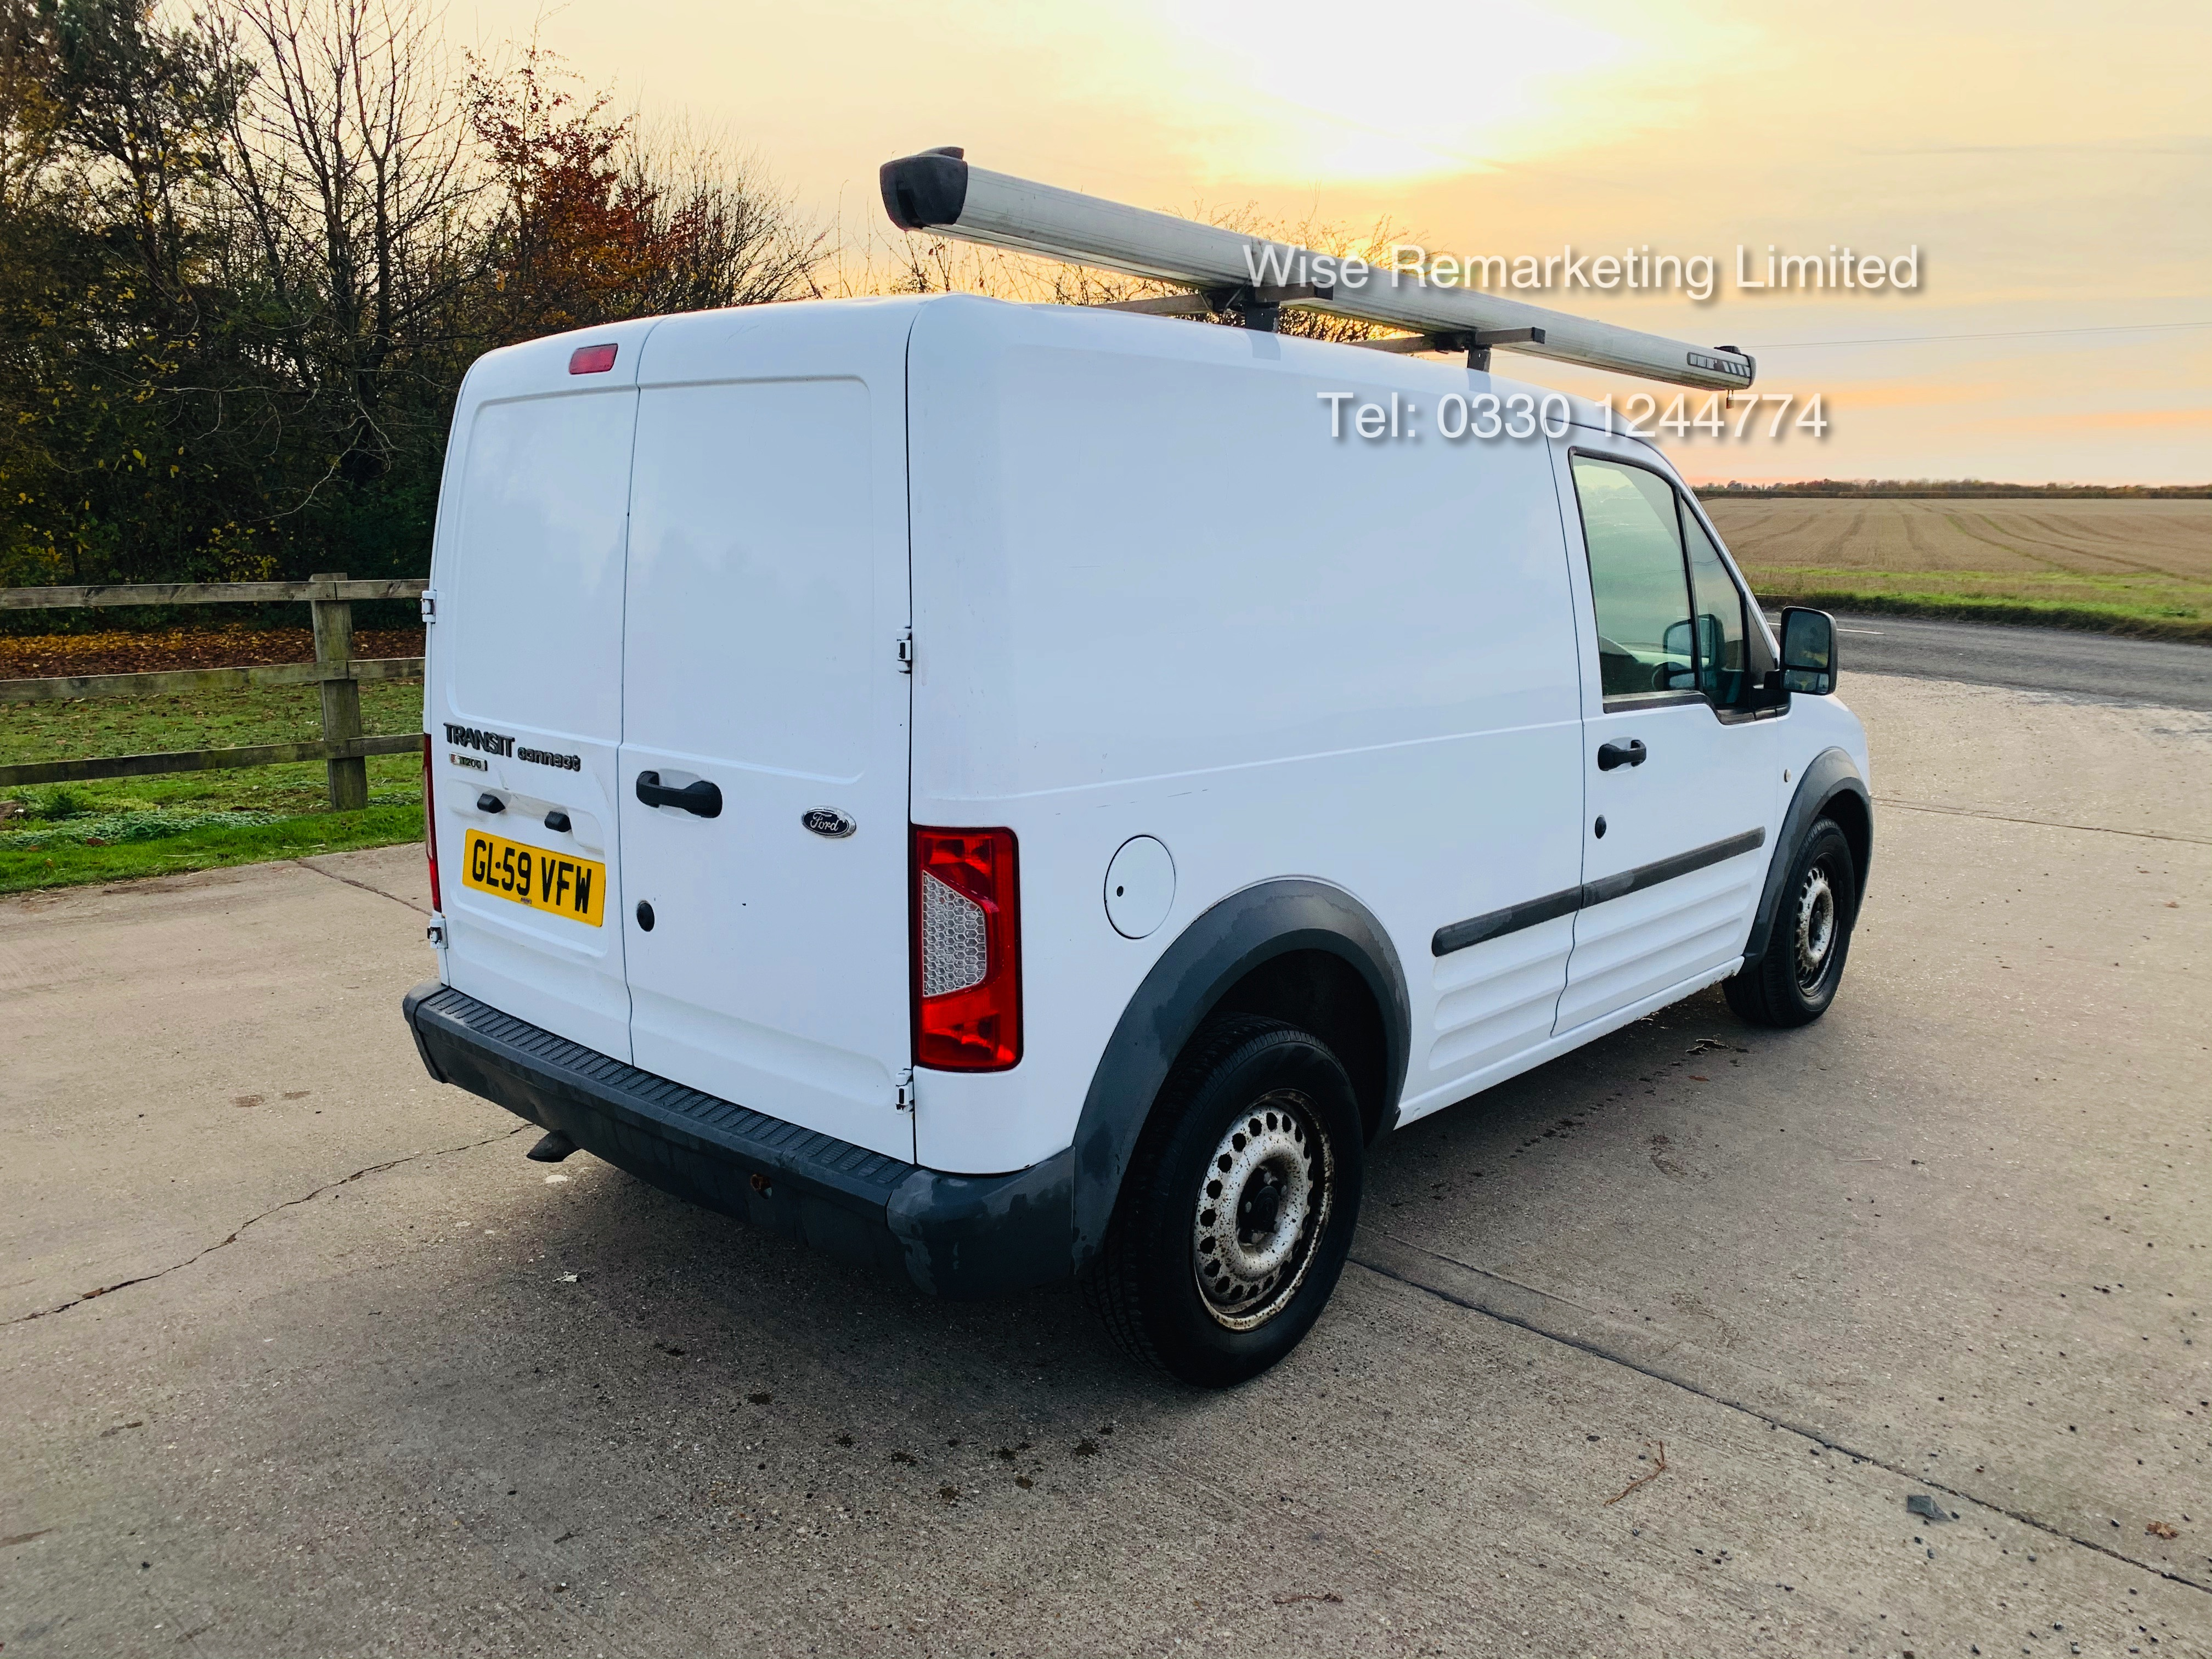 Ford Transit Connect T200 1.8 - 2010 Model - Side Loading Door - Ply Lined - Image 3 of 19